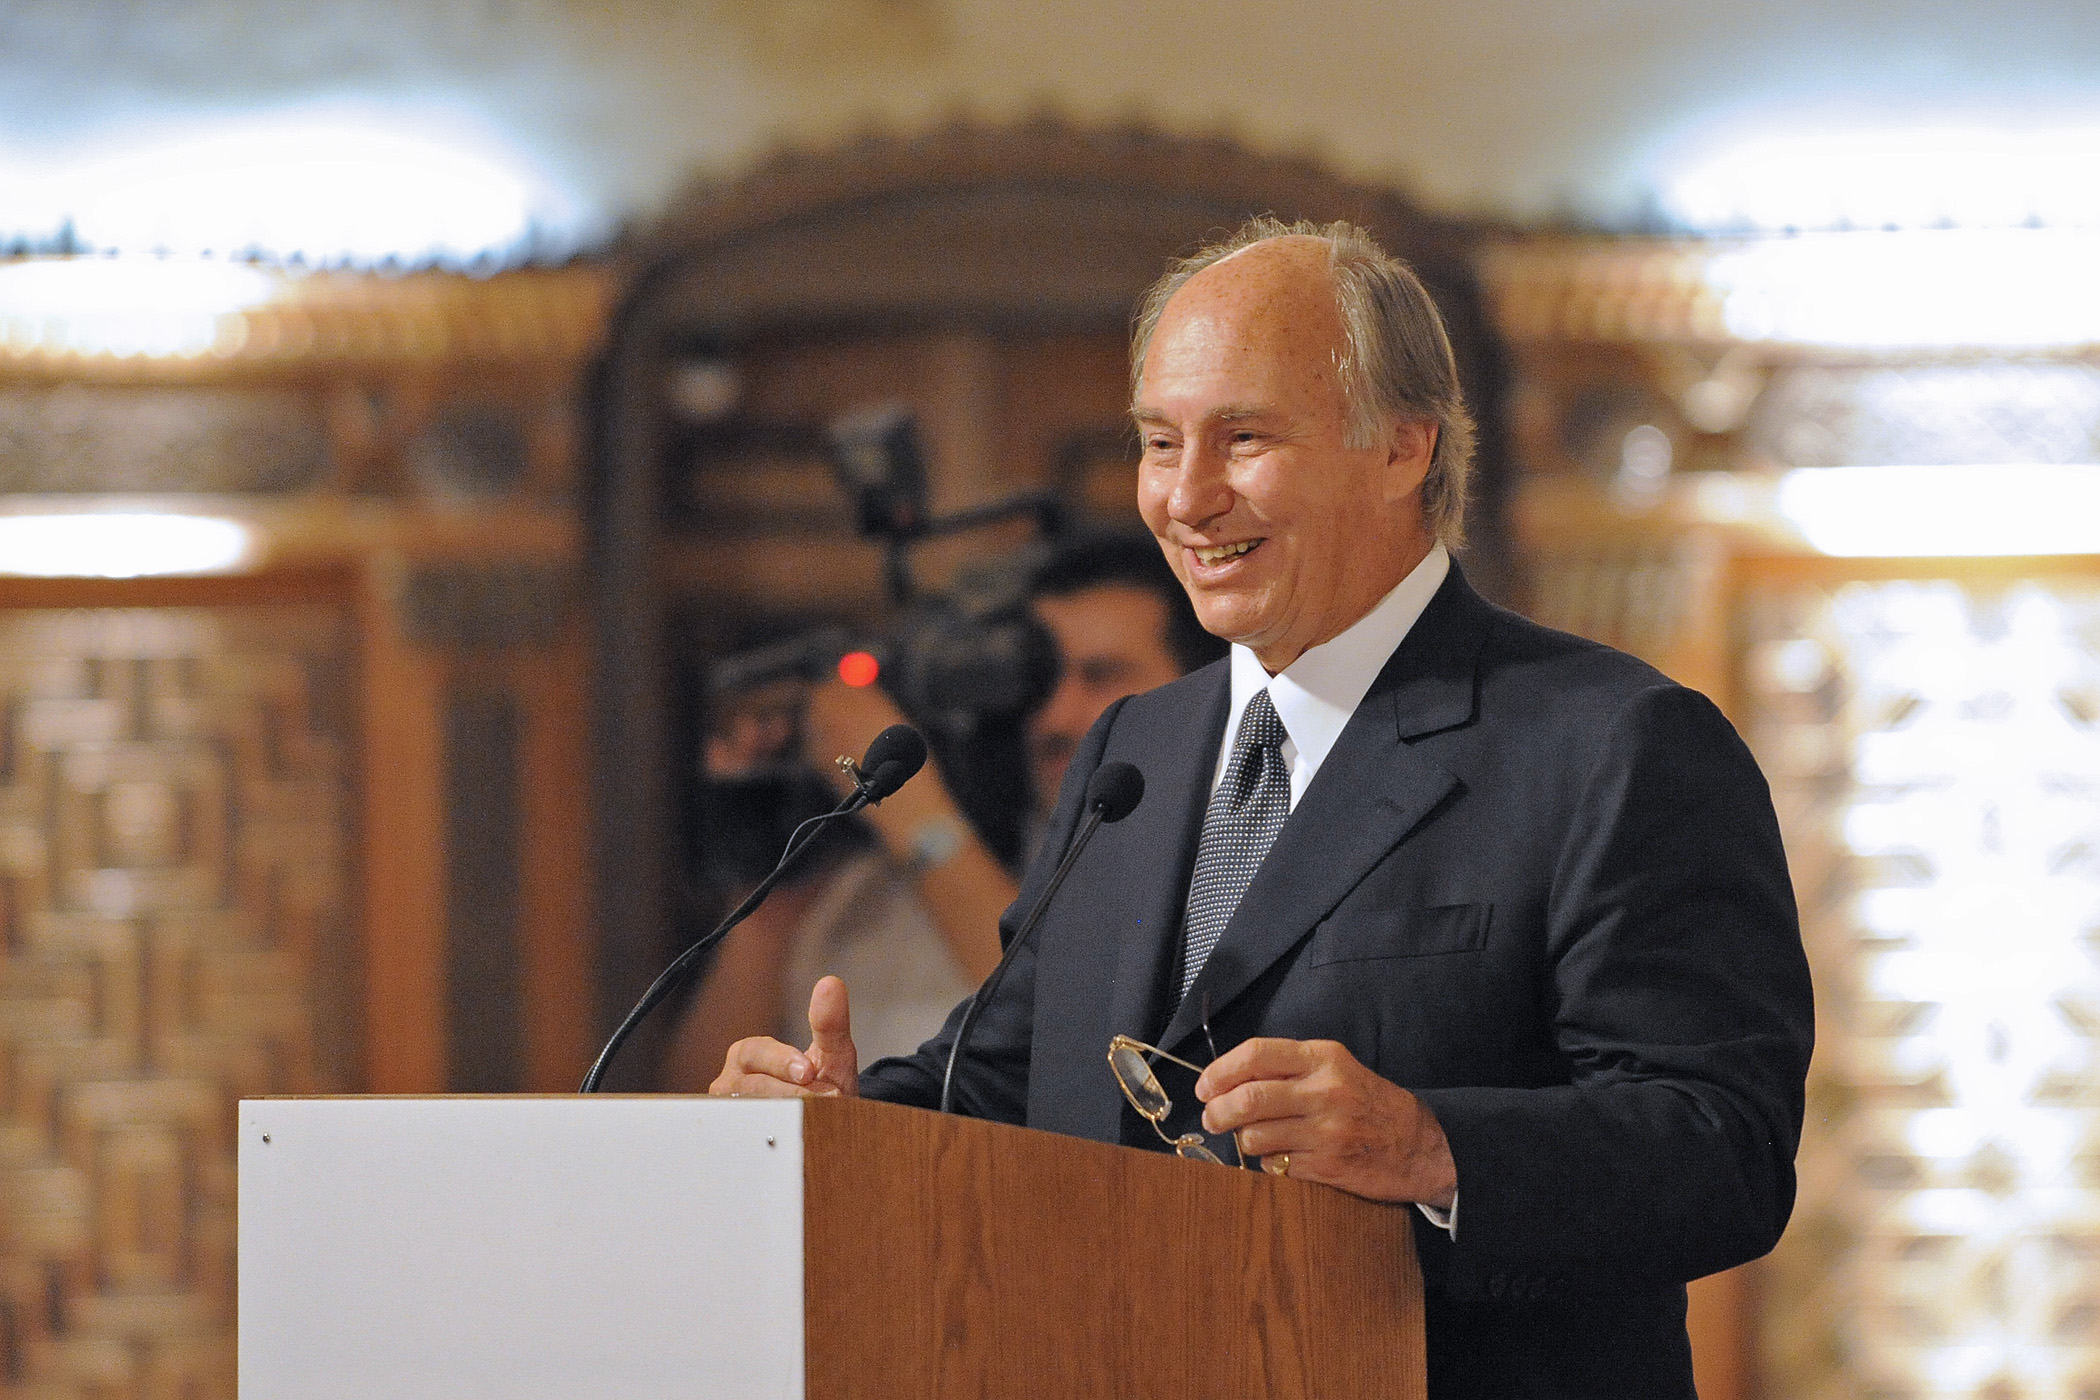 Mawlana Hazar Imam smiles during his speech at a ceremony marking the completion of cultural revitalisation work carried out by the Aga Khan Trust for Culture in partnership with the Syrian Directorate General of Antiquities and Museums. Photo: Gary Otte